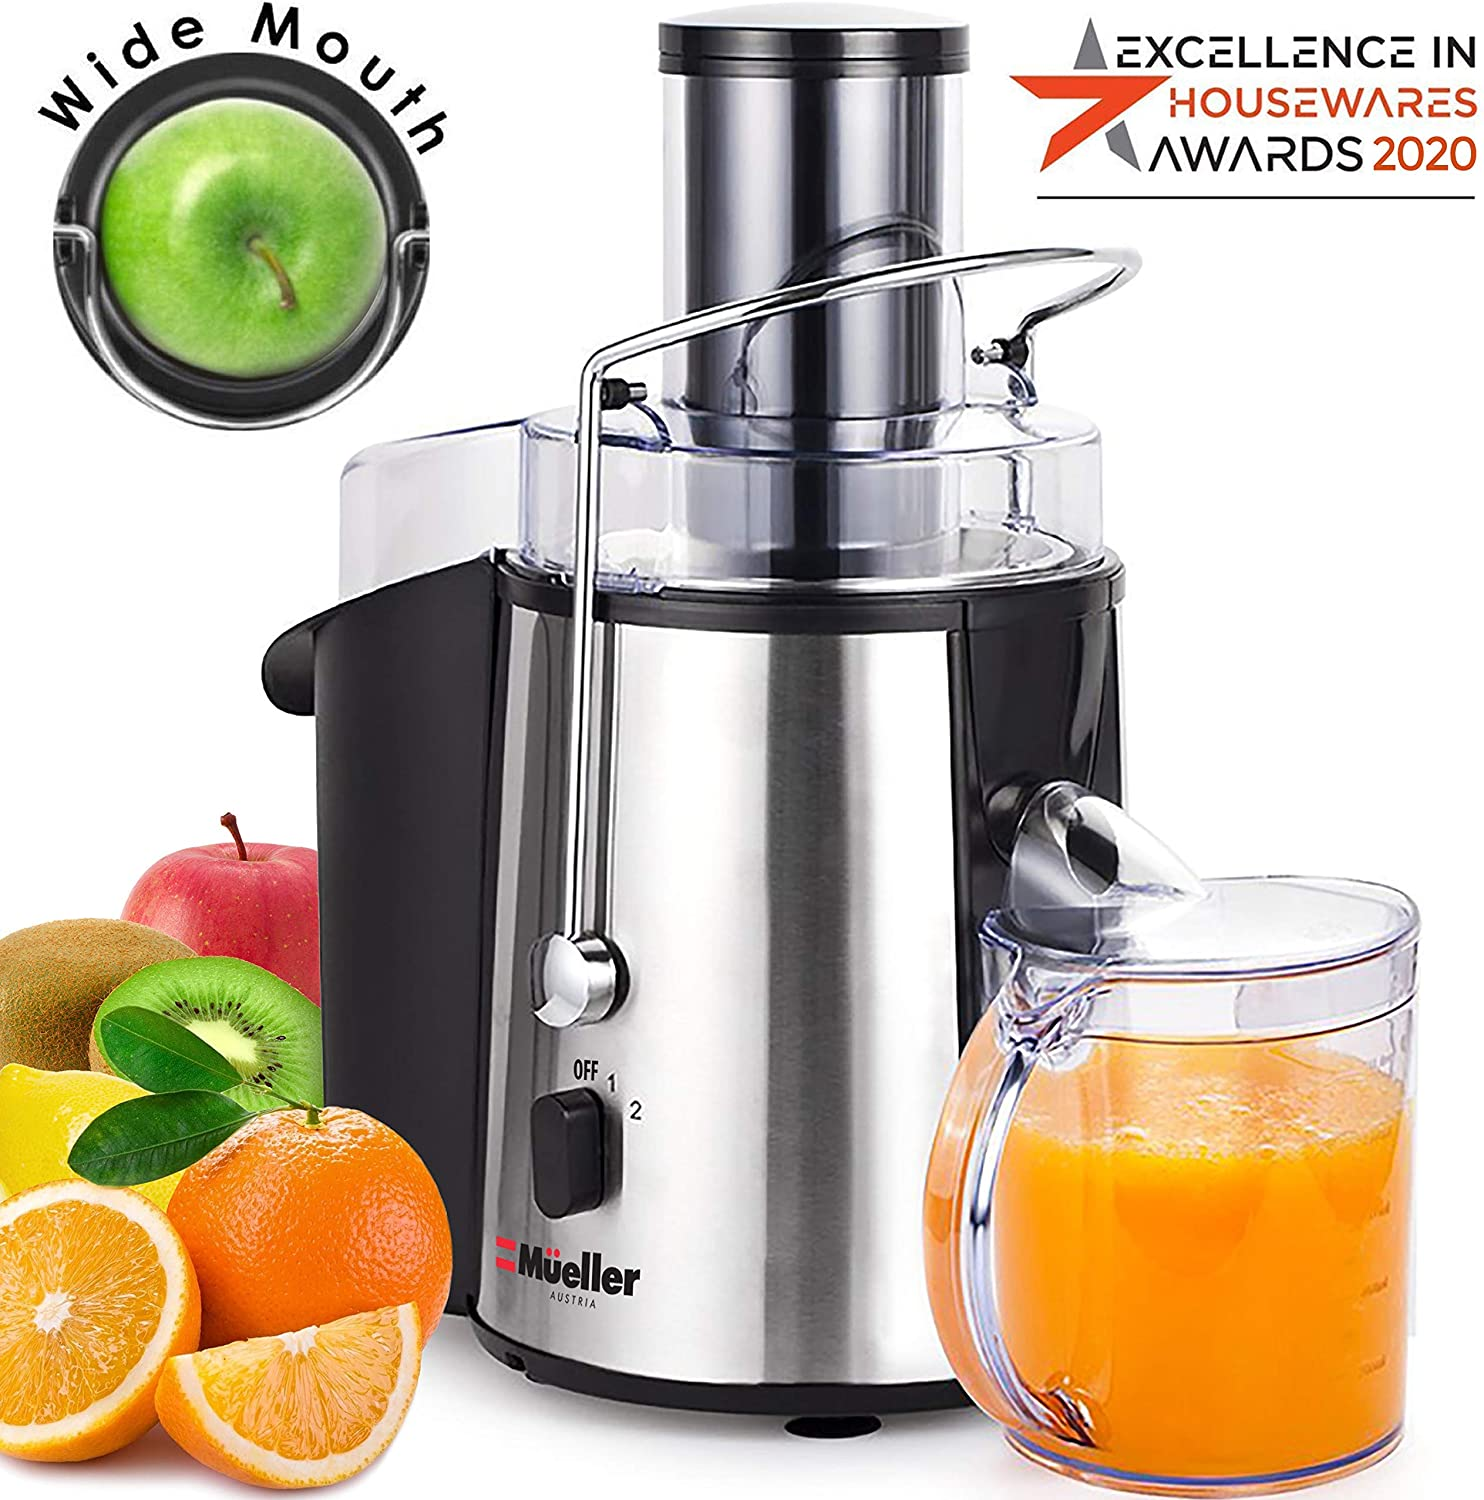 Mueller Austria Juicer Ultra 1100W Power, Easy Clean Extractor Press Centrifugal Juicing Machine, Wide 3